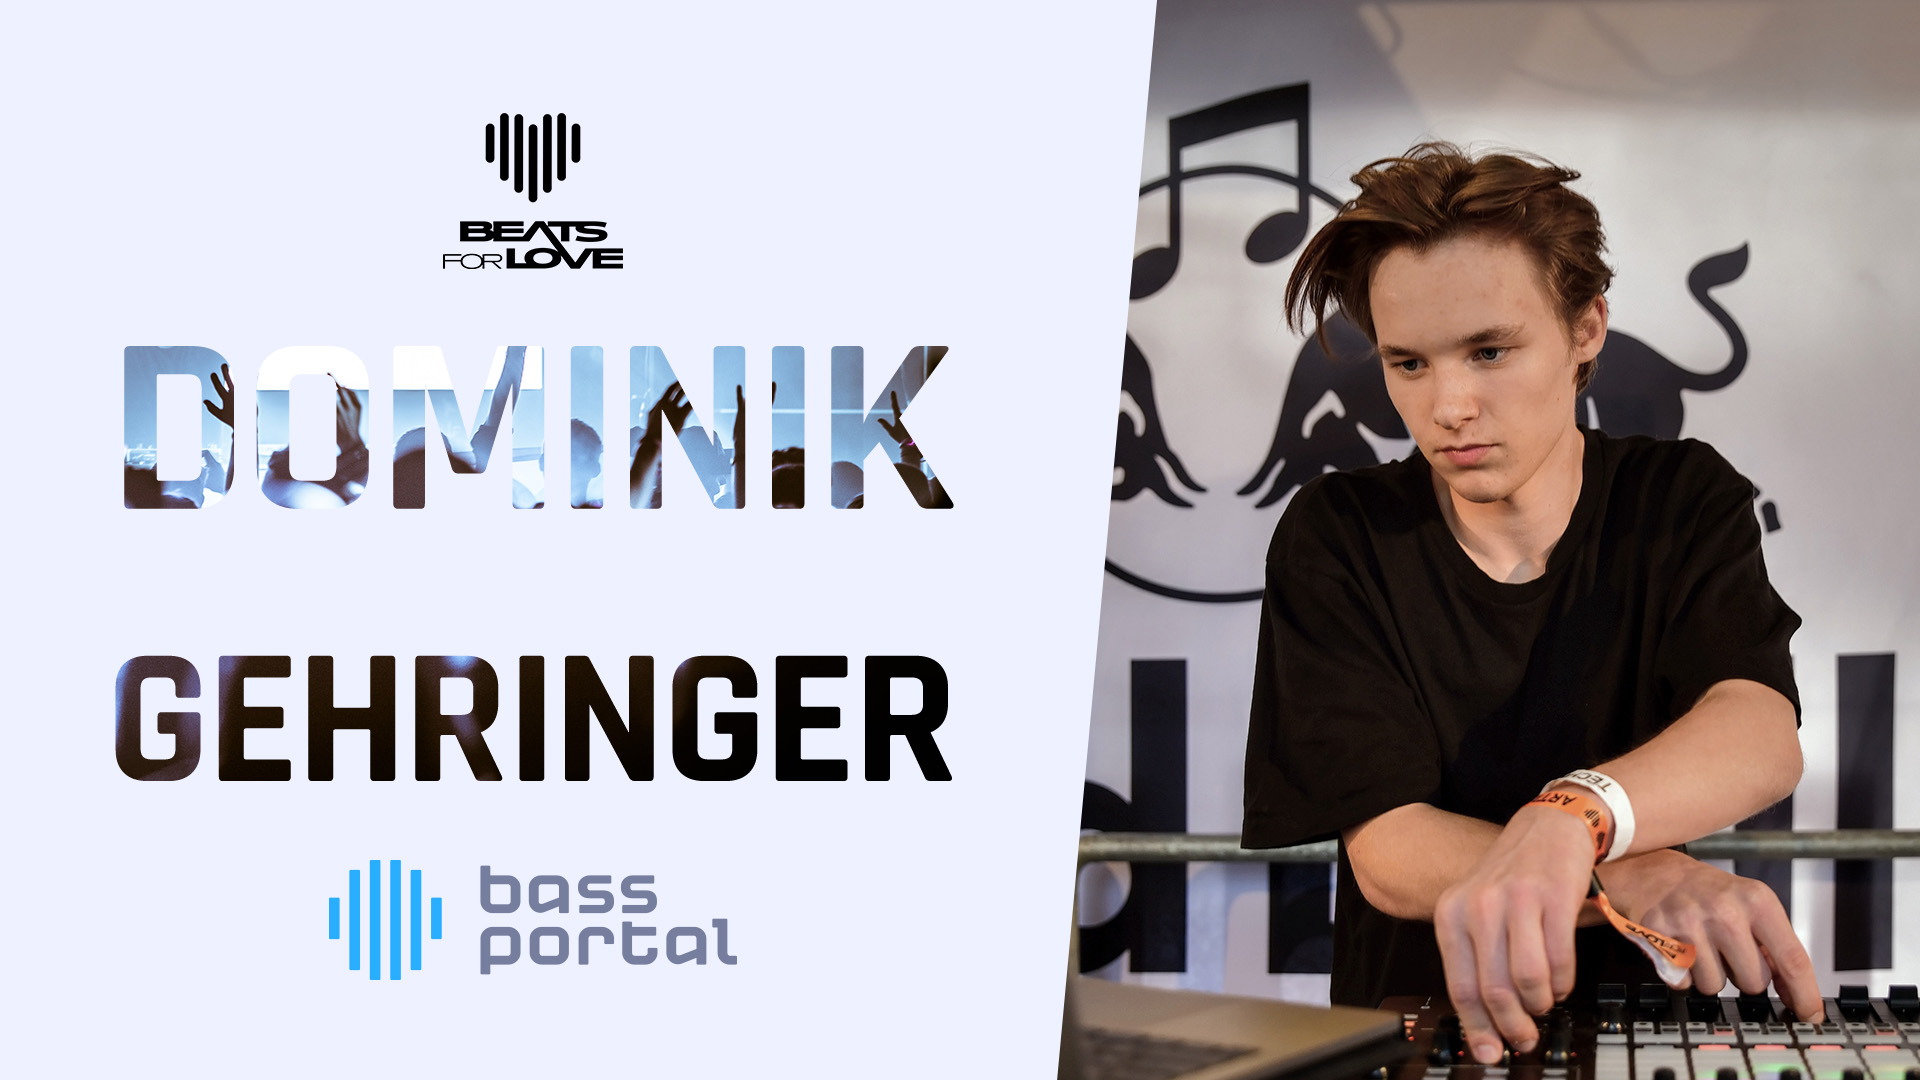 Dominik Gehringer (Live) - Beats for Love 2019